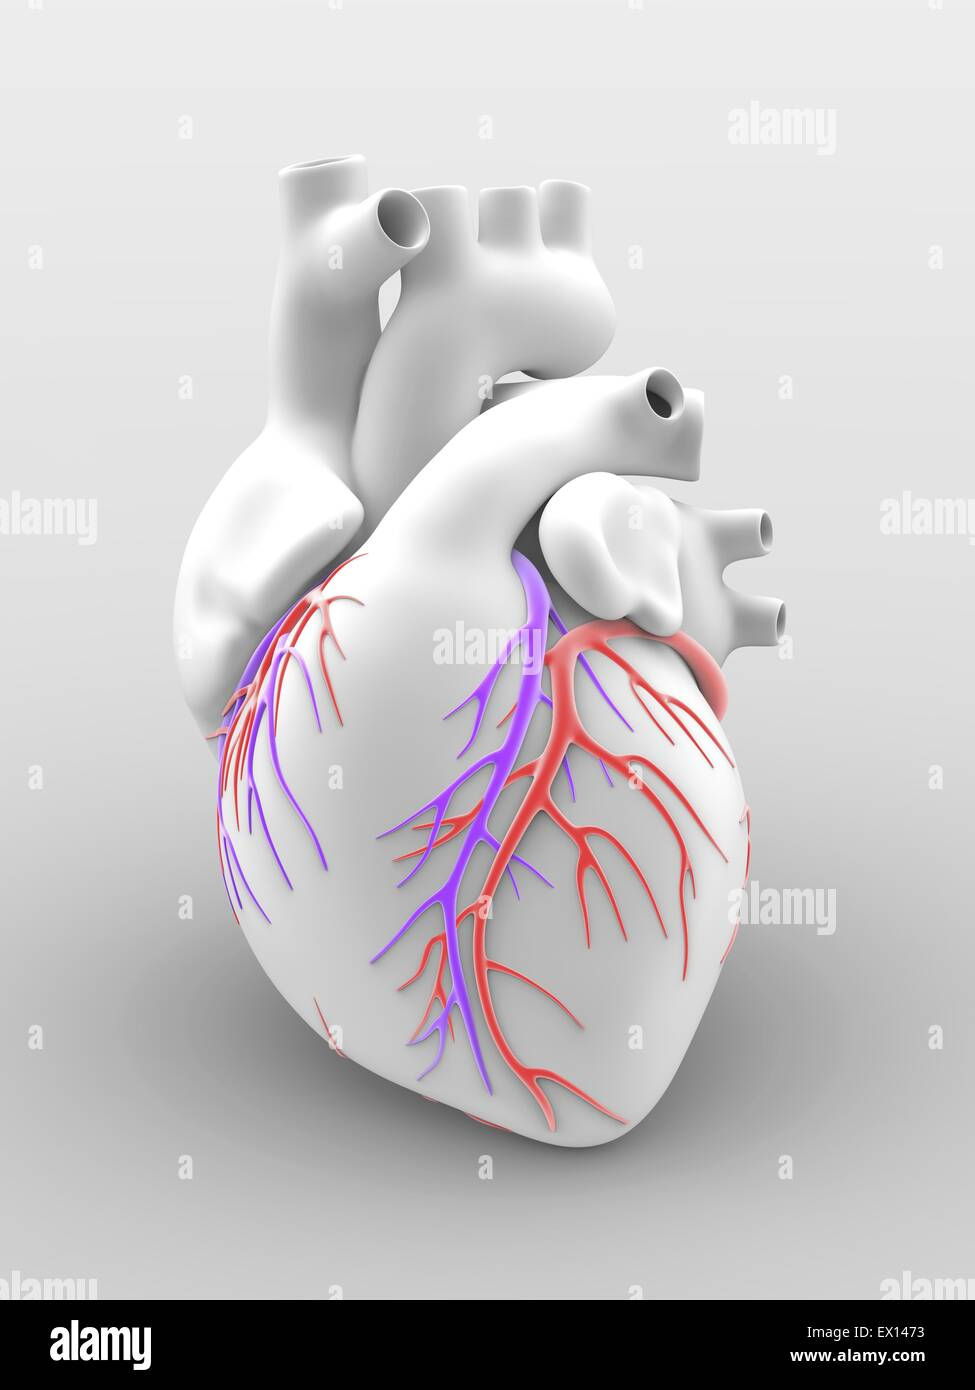 Heart and coronary arteries Artwork of the external anatomy of a ...